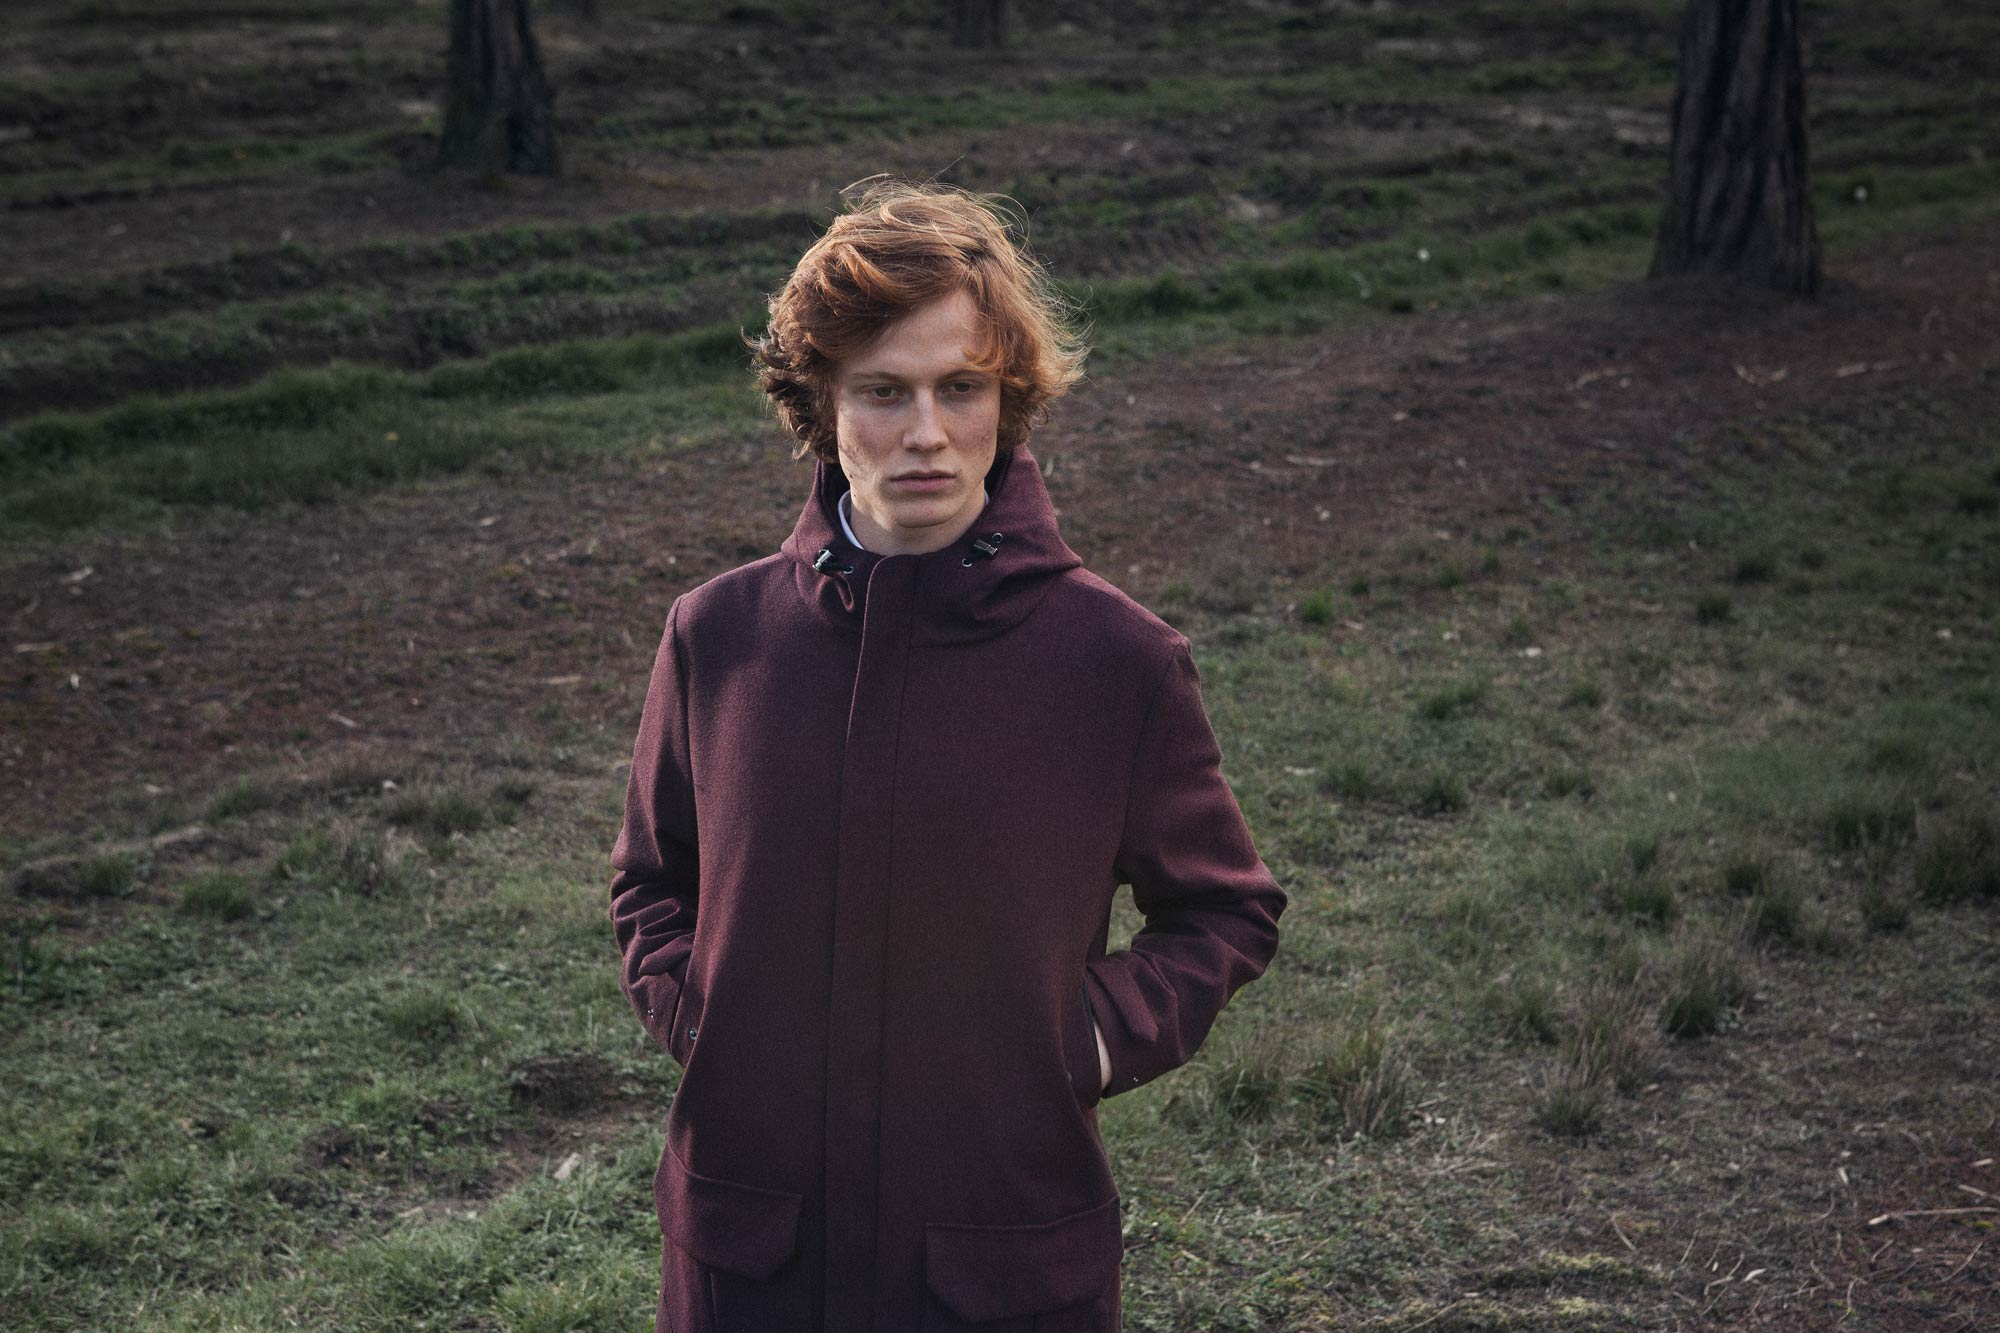 welter_shelter_fw16_campaign-2